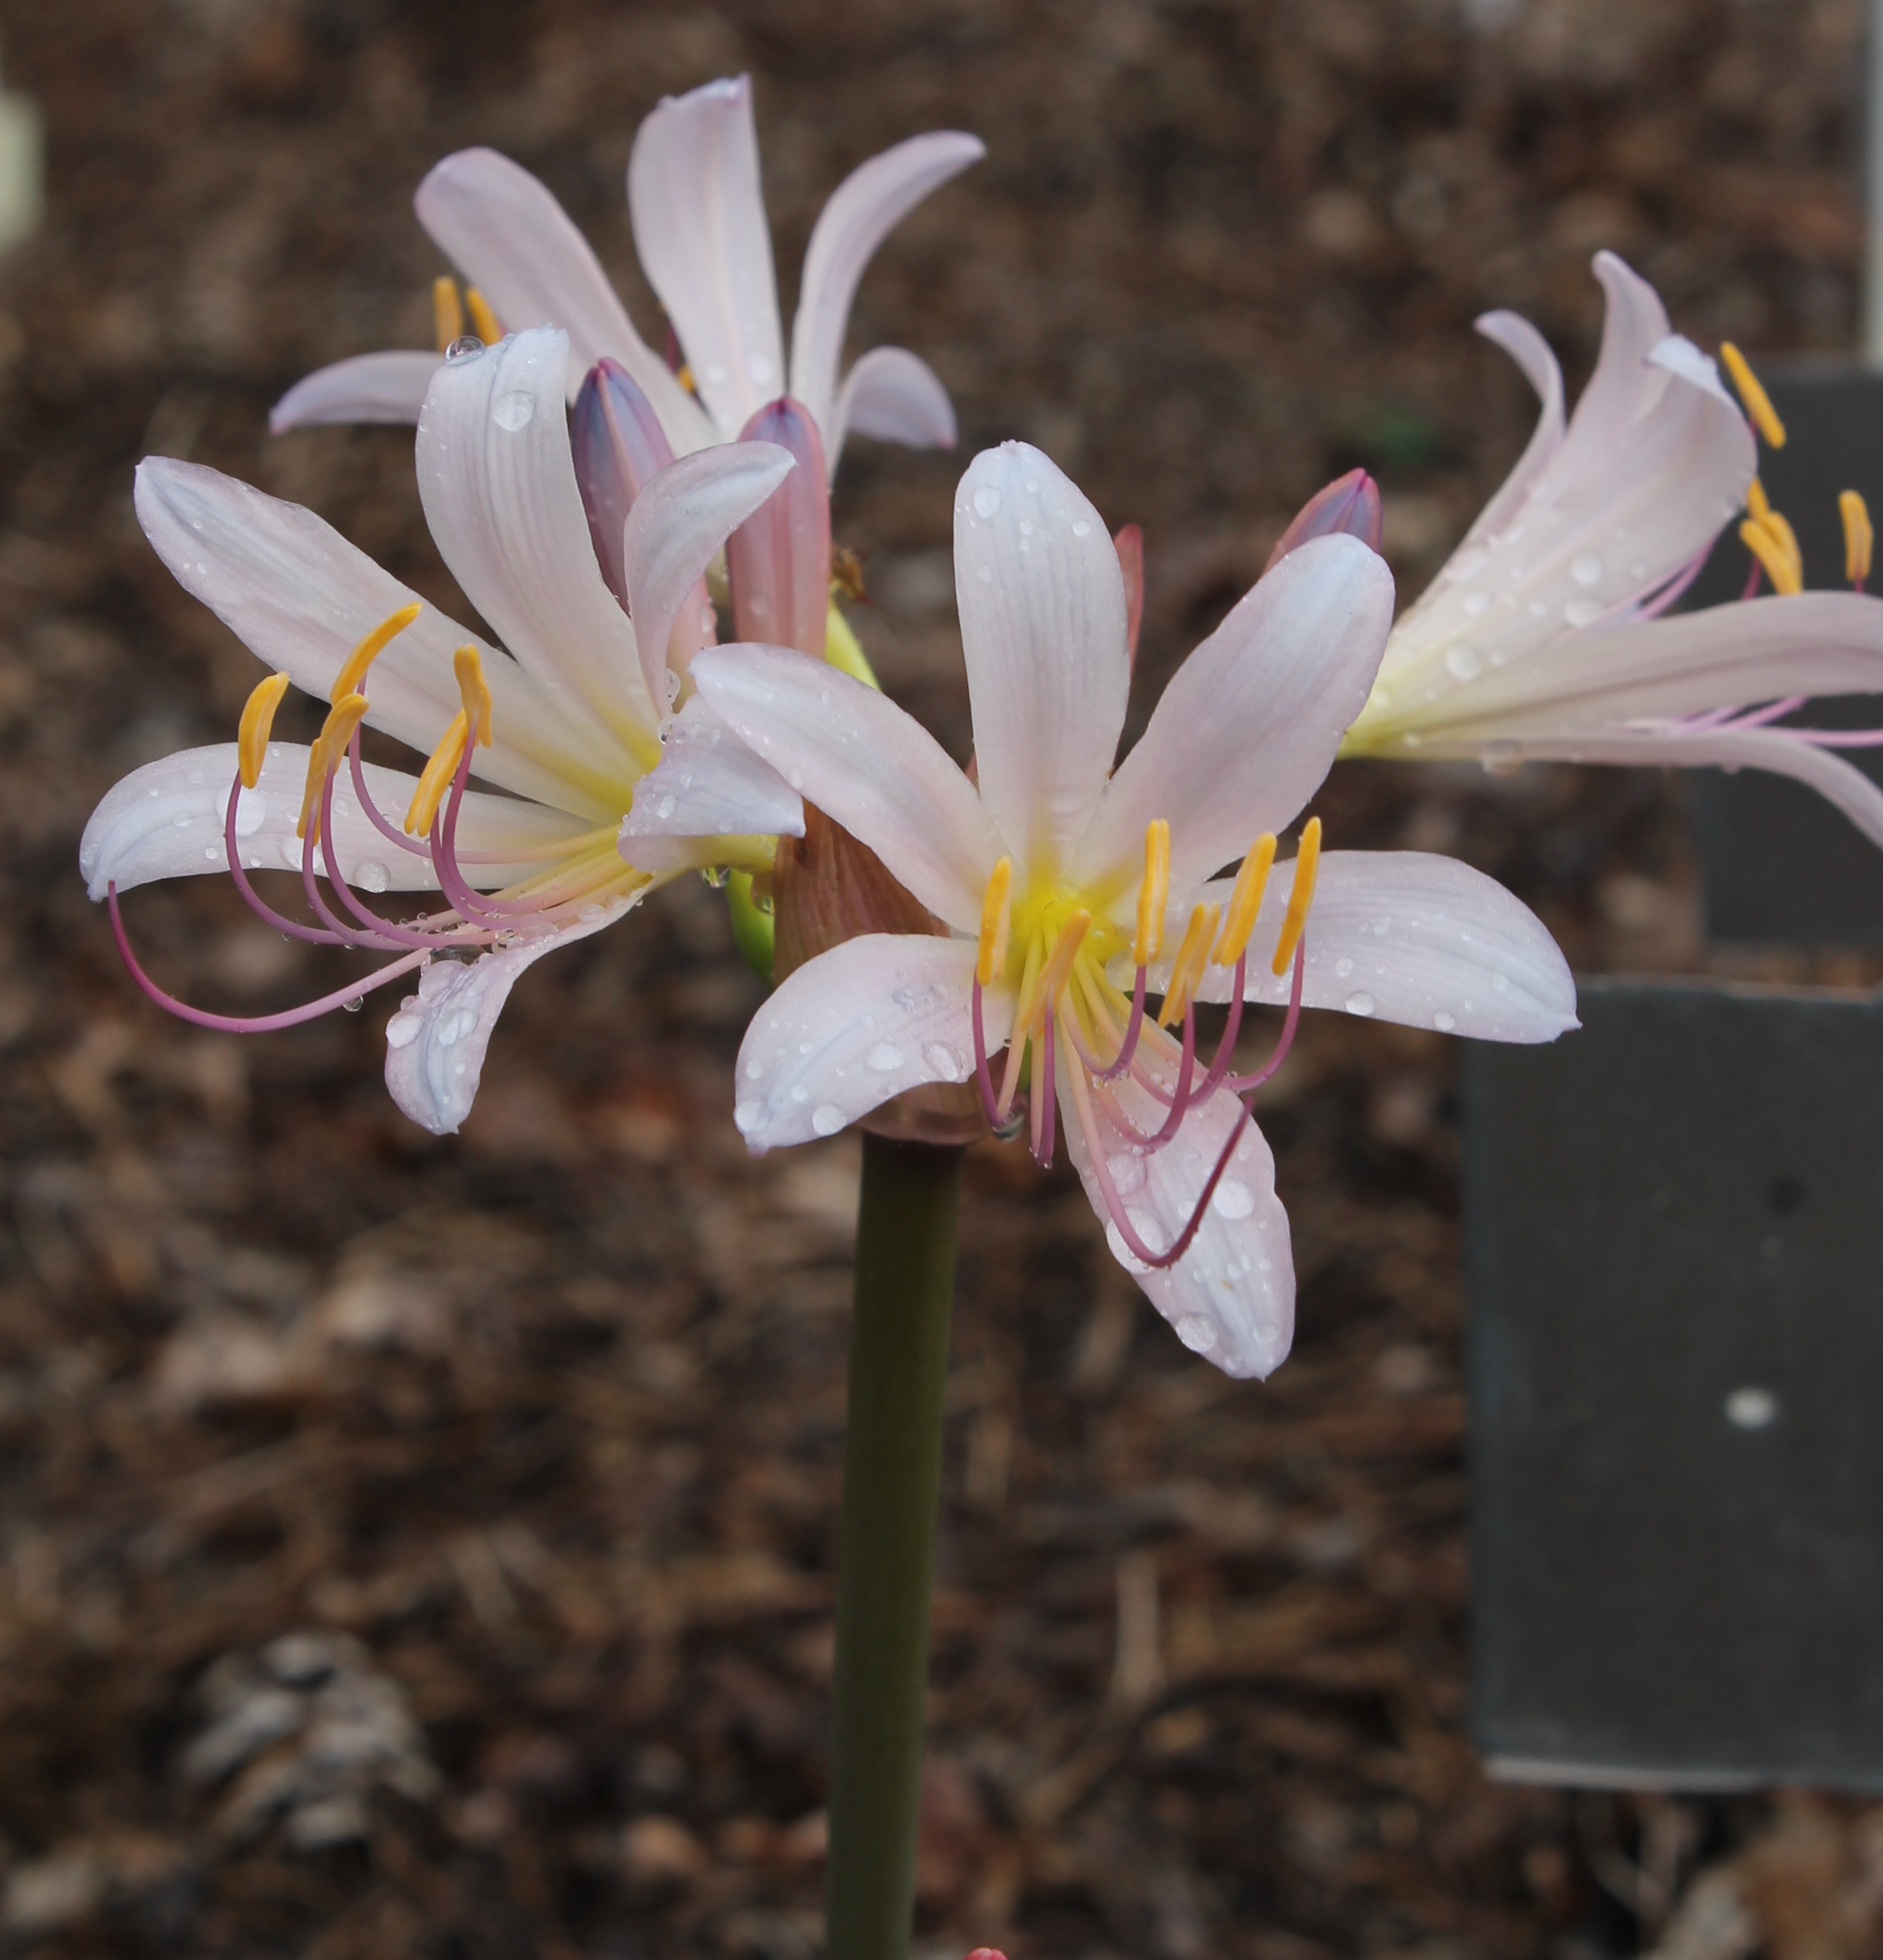 Lycoris x incarnata 'Blue Queen' @ JLBG - a Komoriya Nursery hybrid of Lycoris sprengeri x longituba